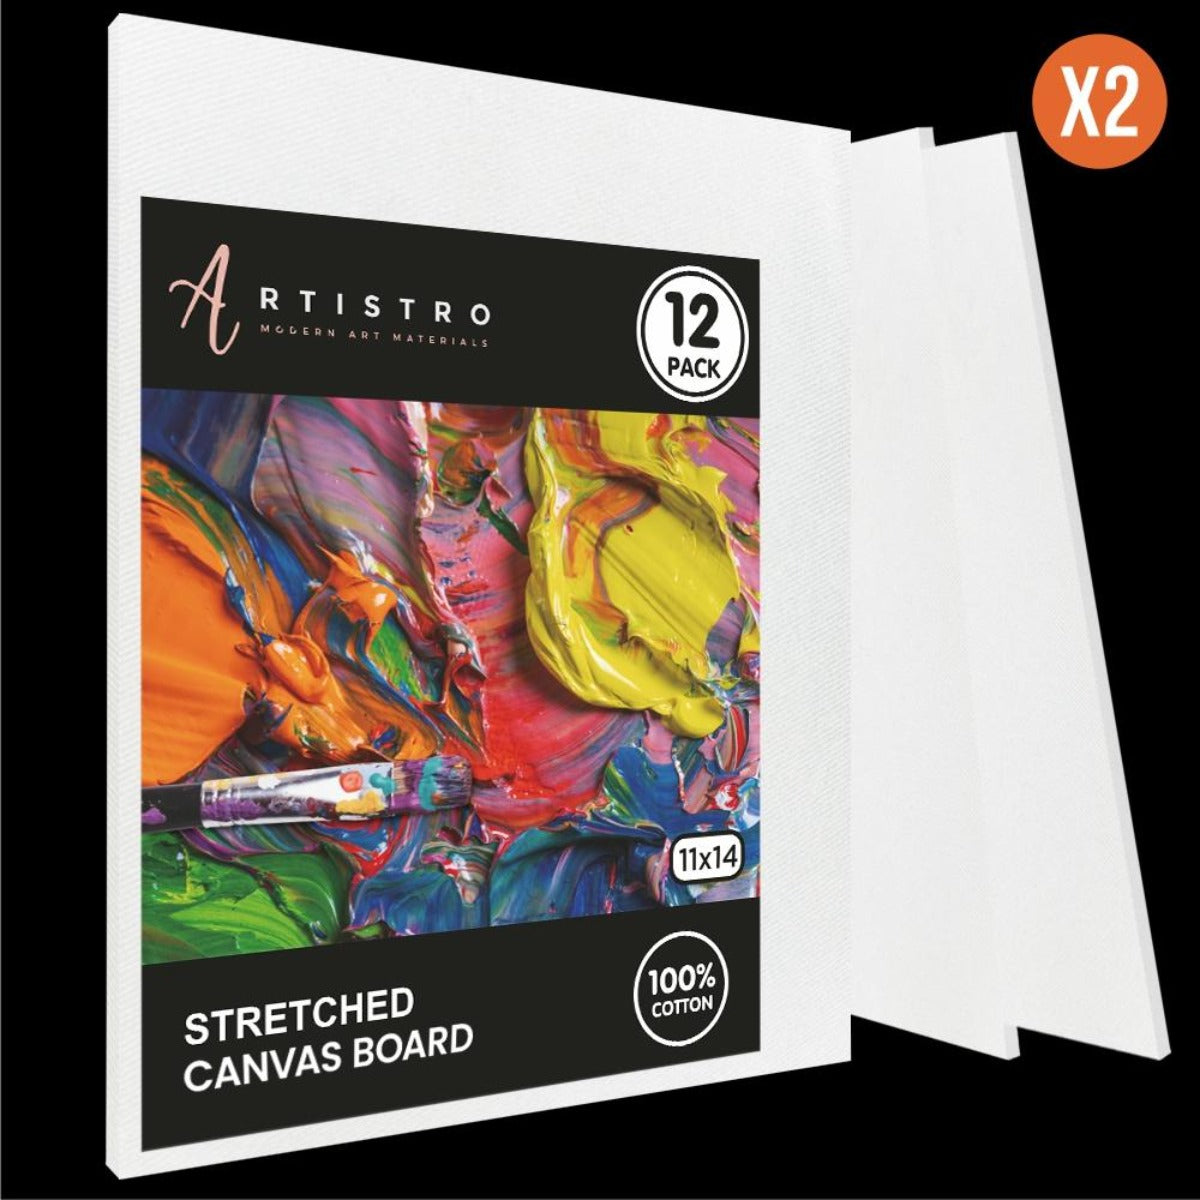 "Artistro Stretched Canvas, White, MDF board, 11x14"" - Pack of 12 - Artistro"